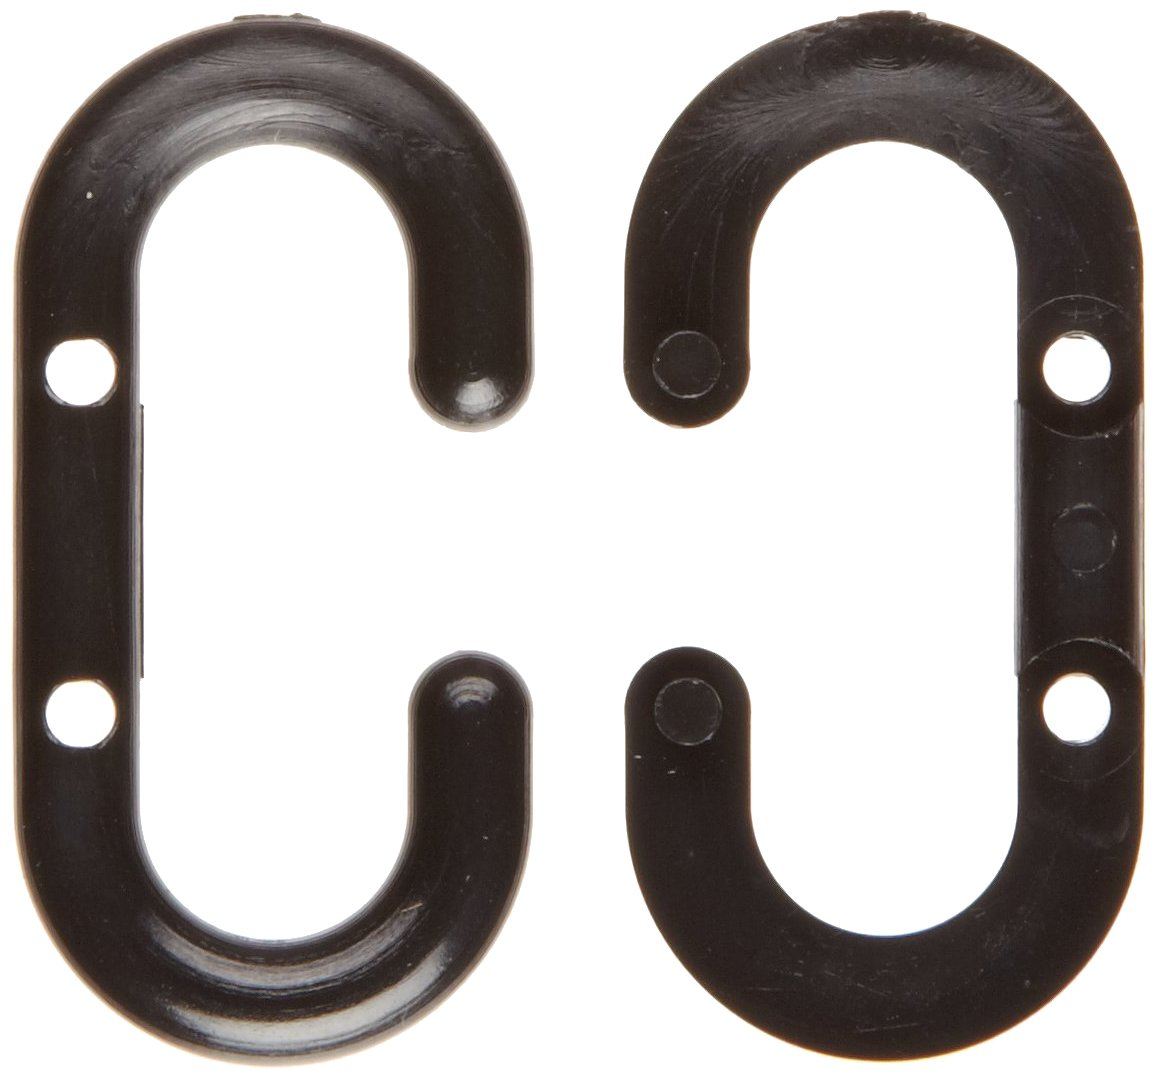 Mr. Chain 30703 Black Plastic Master Link, 1.5'' link, 50 Count by Mr. Chain